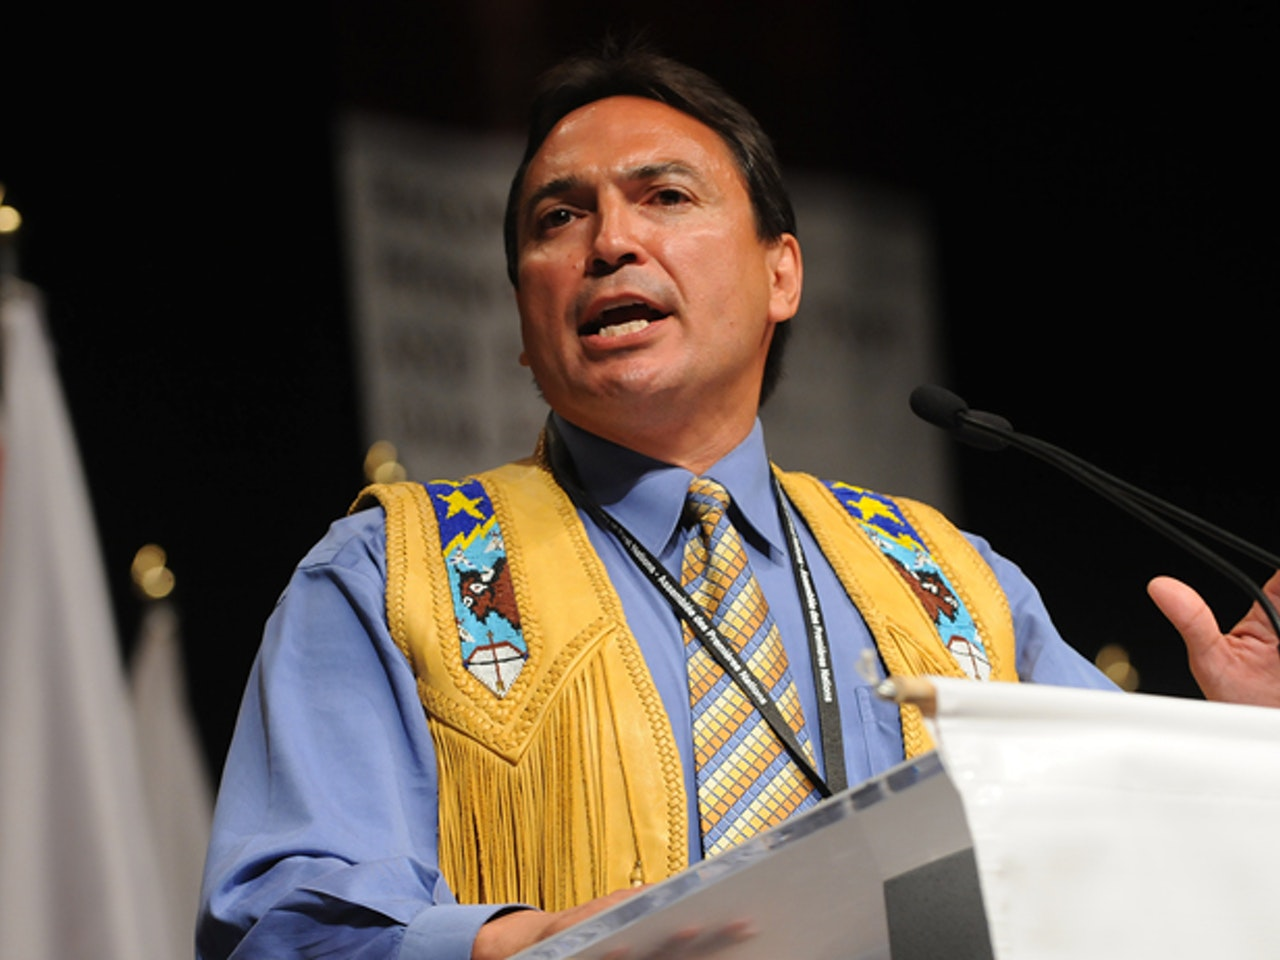 """""""Great Canadians"""" Series - National Chief Perry Bellegarde of the Assembly of First Nations - Entrevue """"Canadiens Exceptionnels"""" avec Chef Bellegarde de l'APN"""